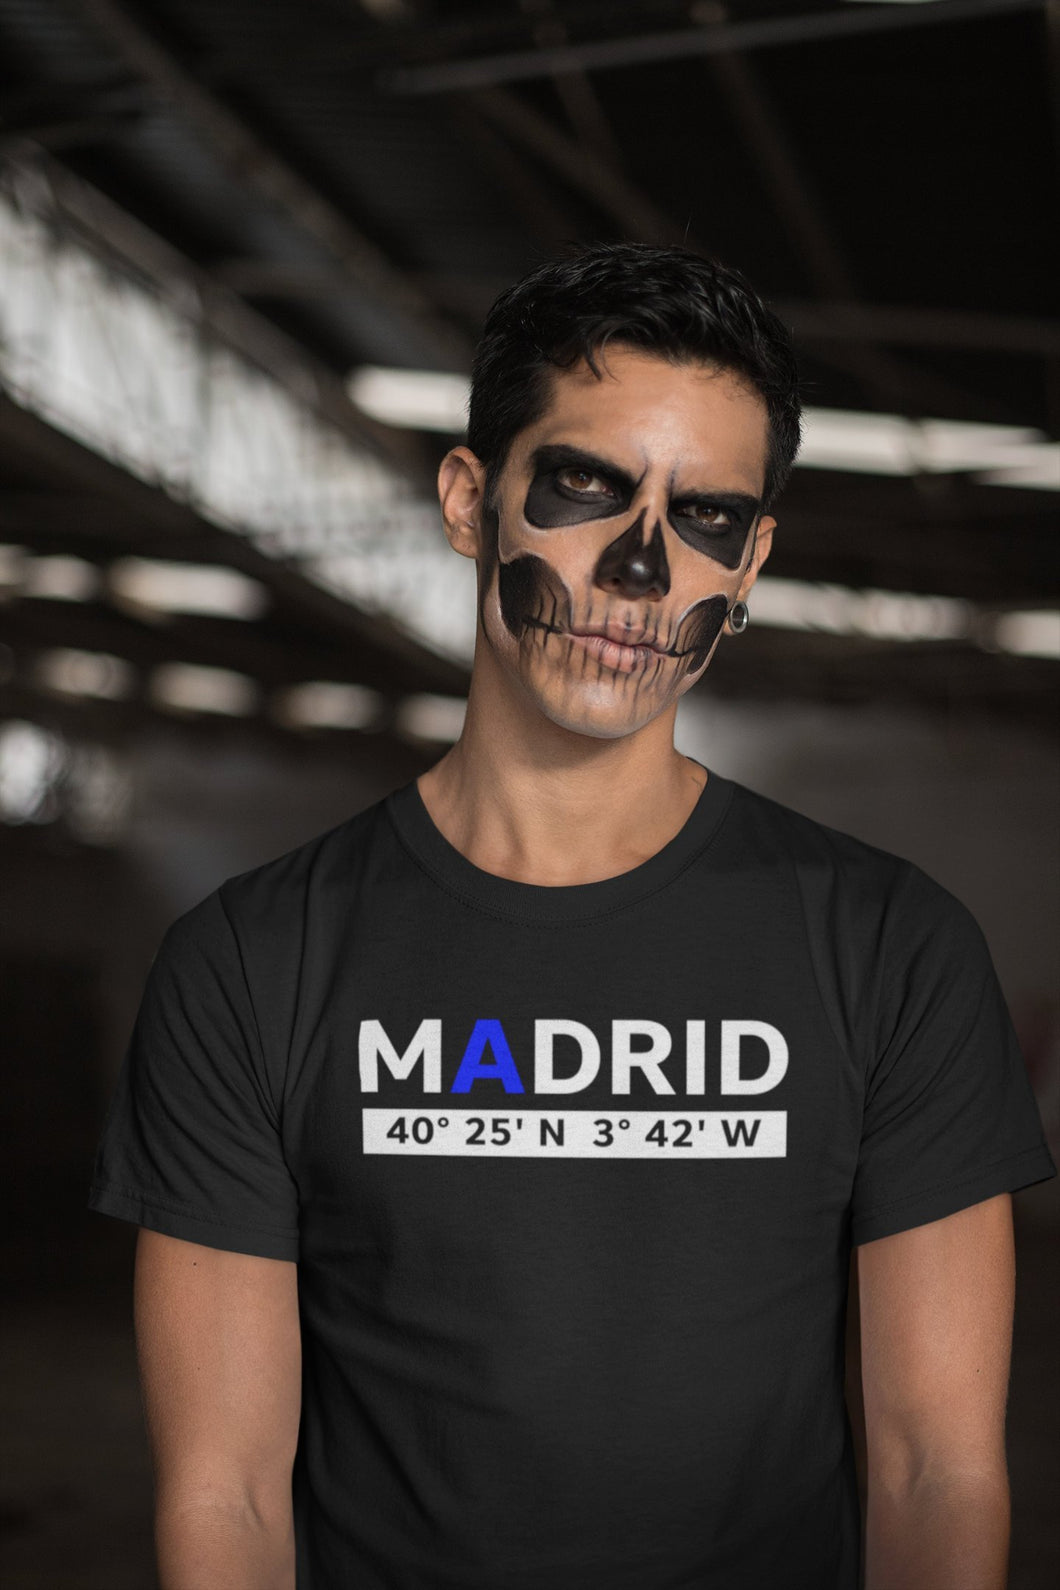 MADRID Tshirt - Rise up!